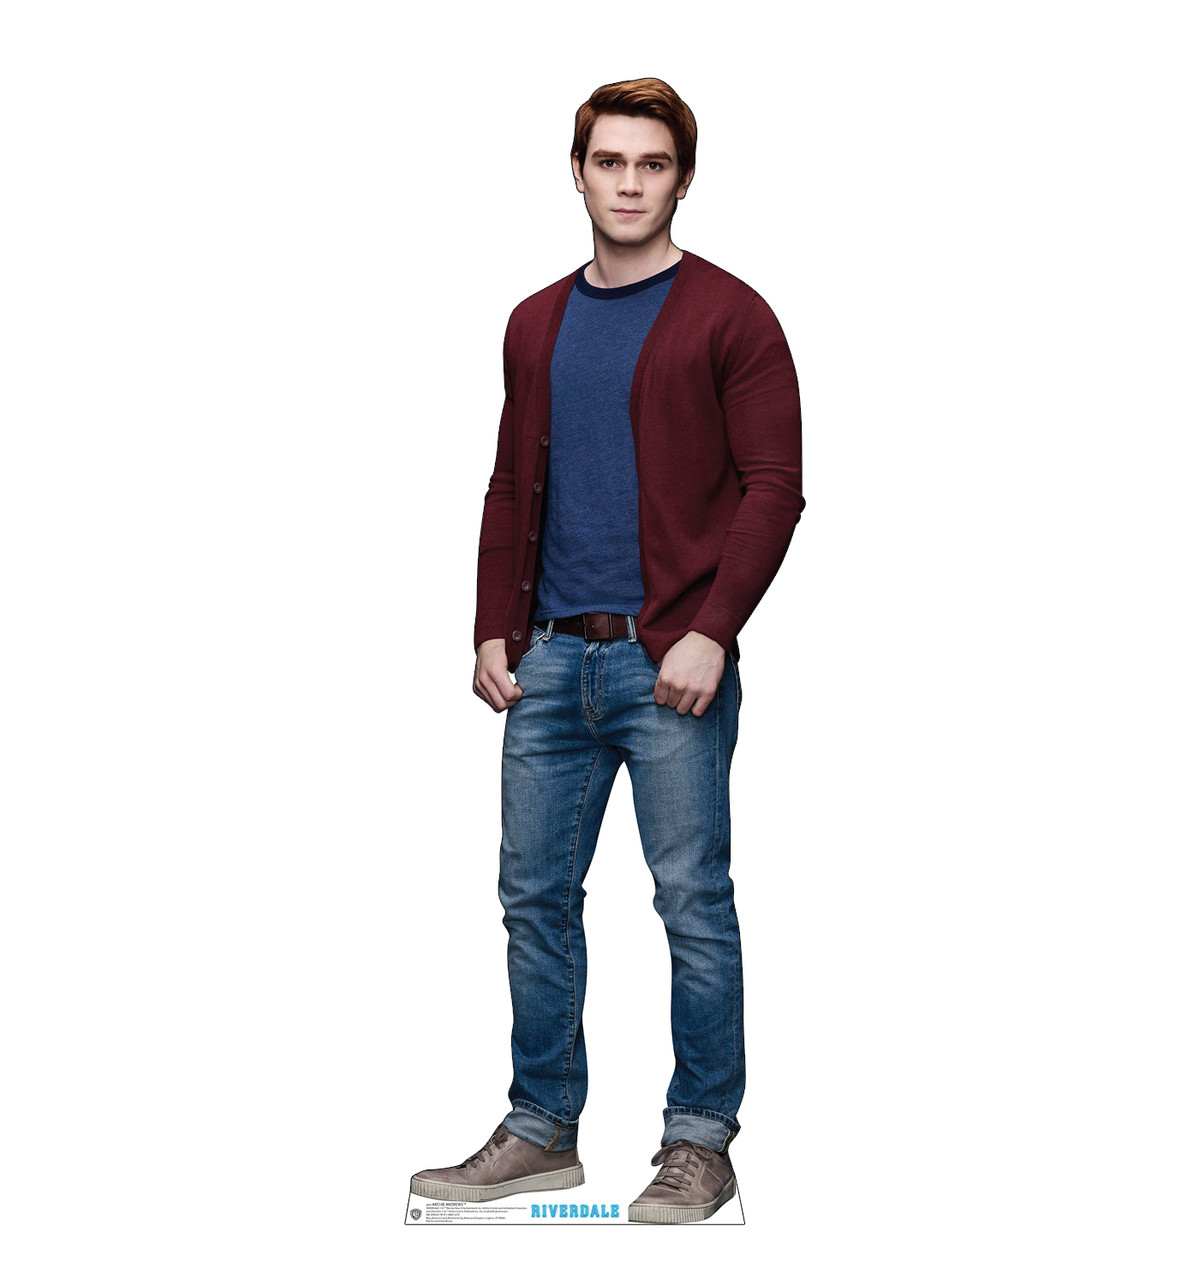 riverdale archie andrews standee life size cardboard cutout archie andrews cardboard cutout 2881